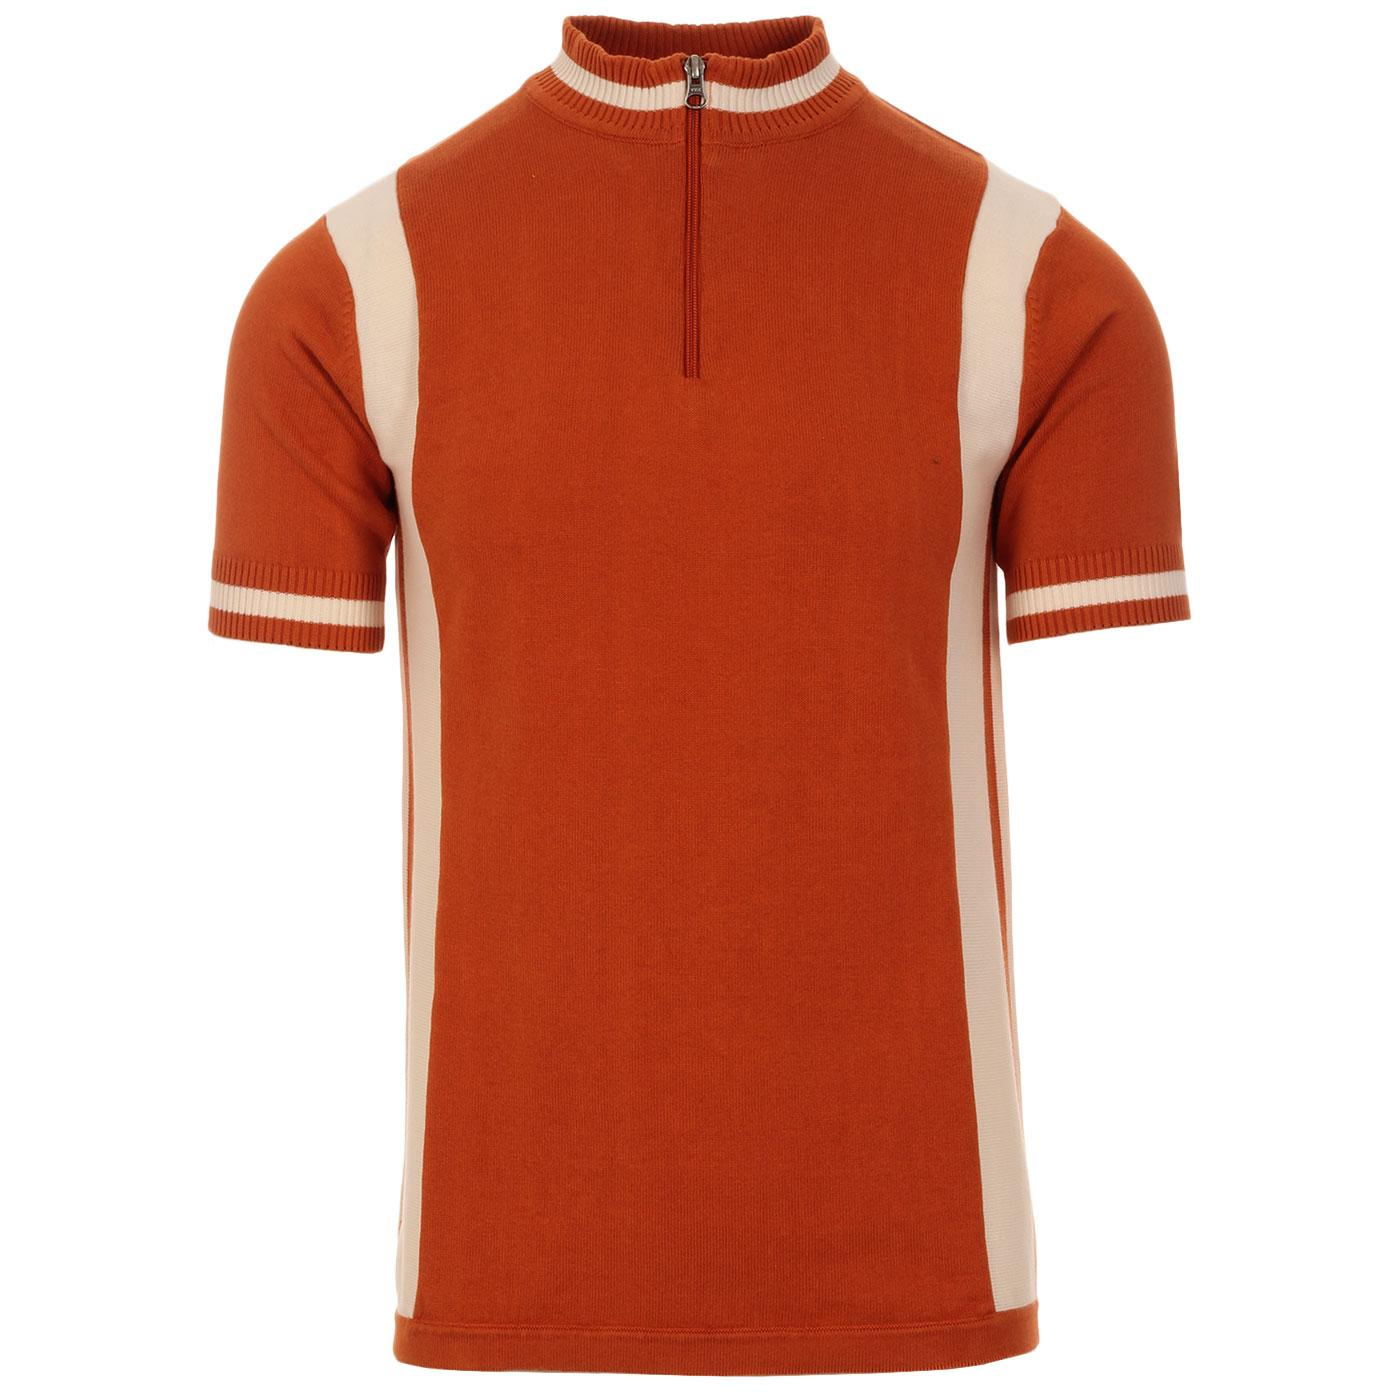 Vitesse MADCAP ENGLAND Mod Knit Cycling Top (Rust)